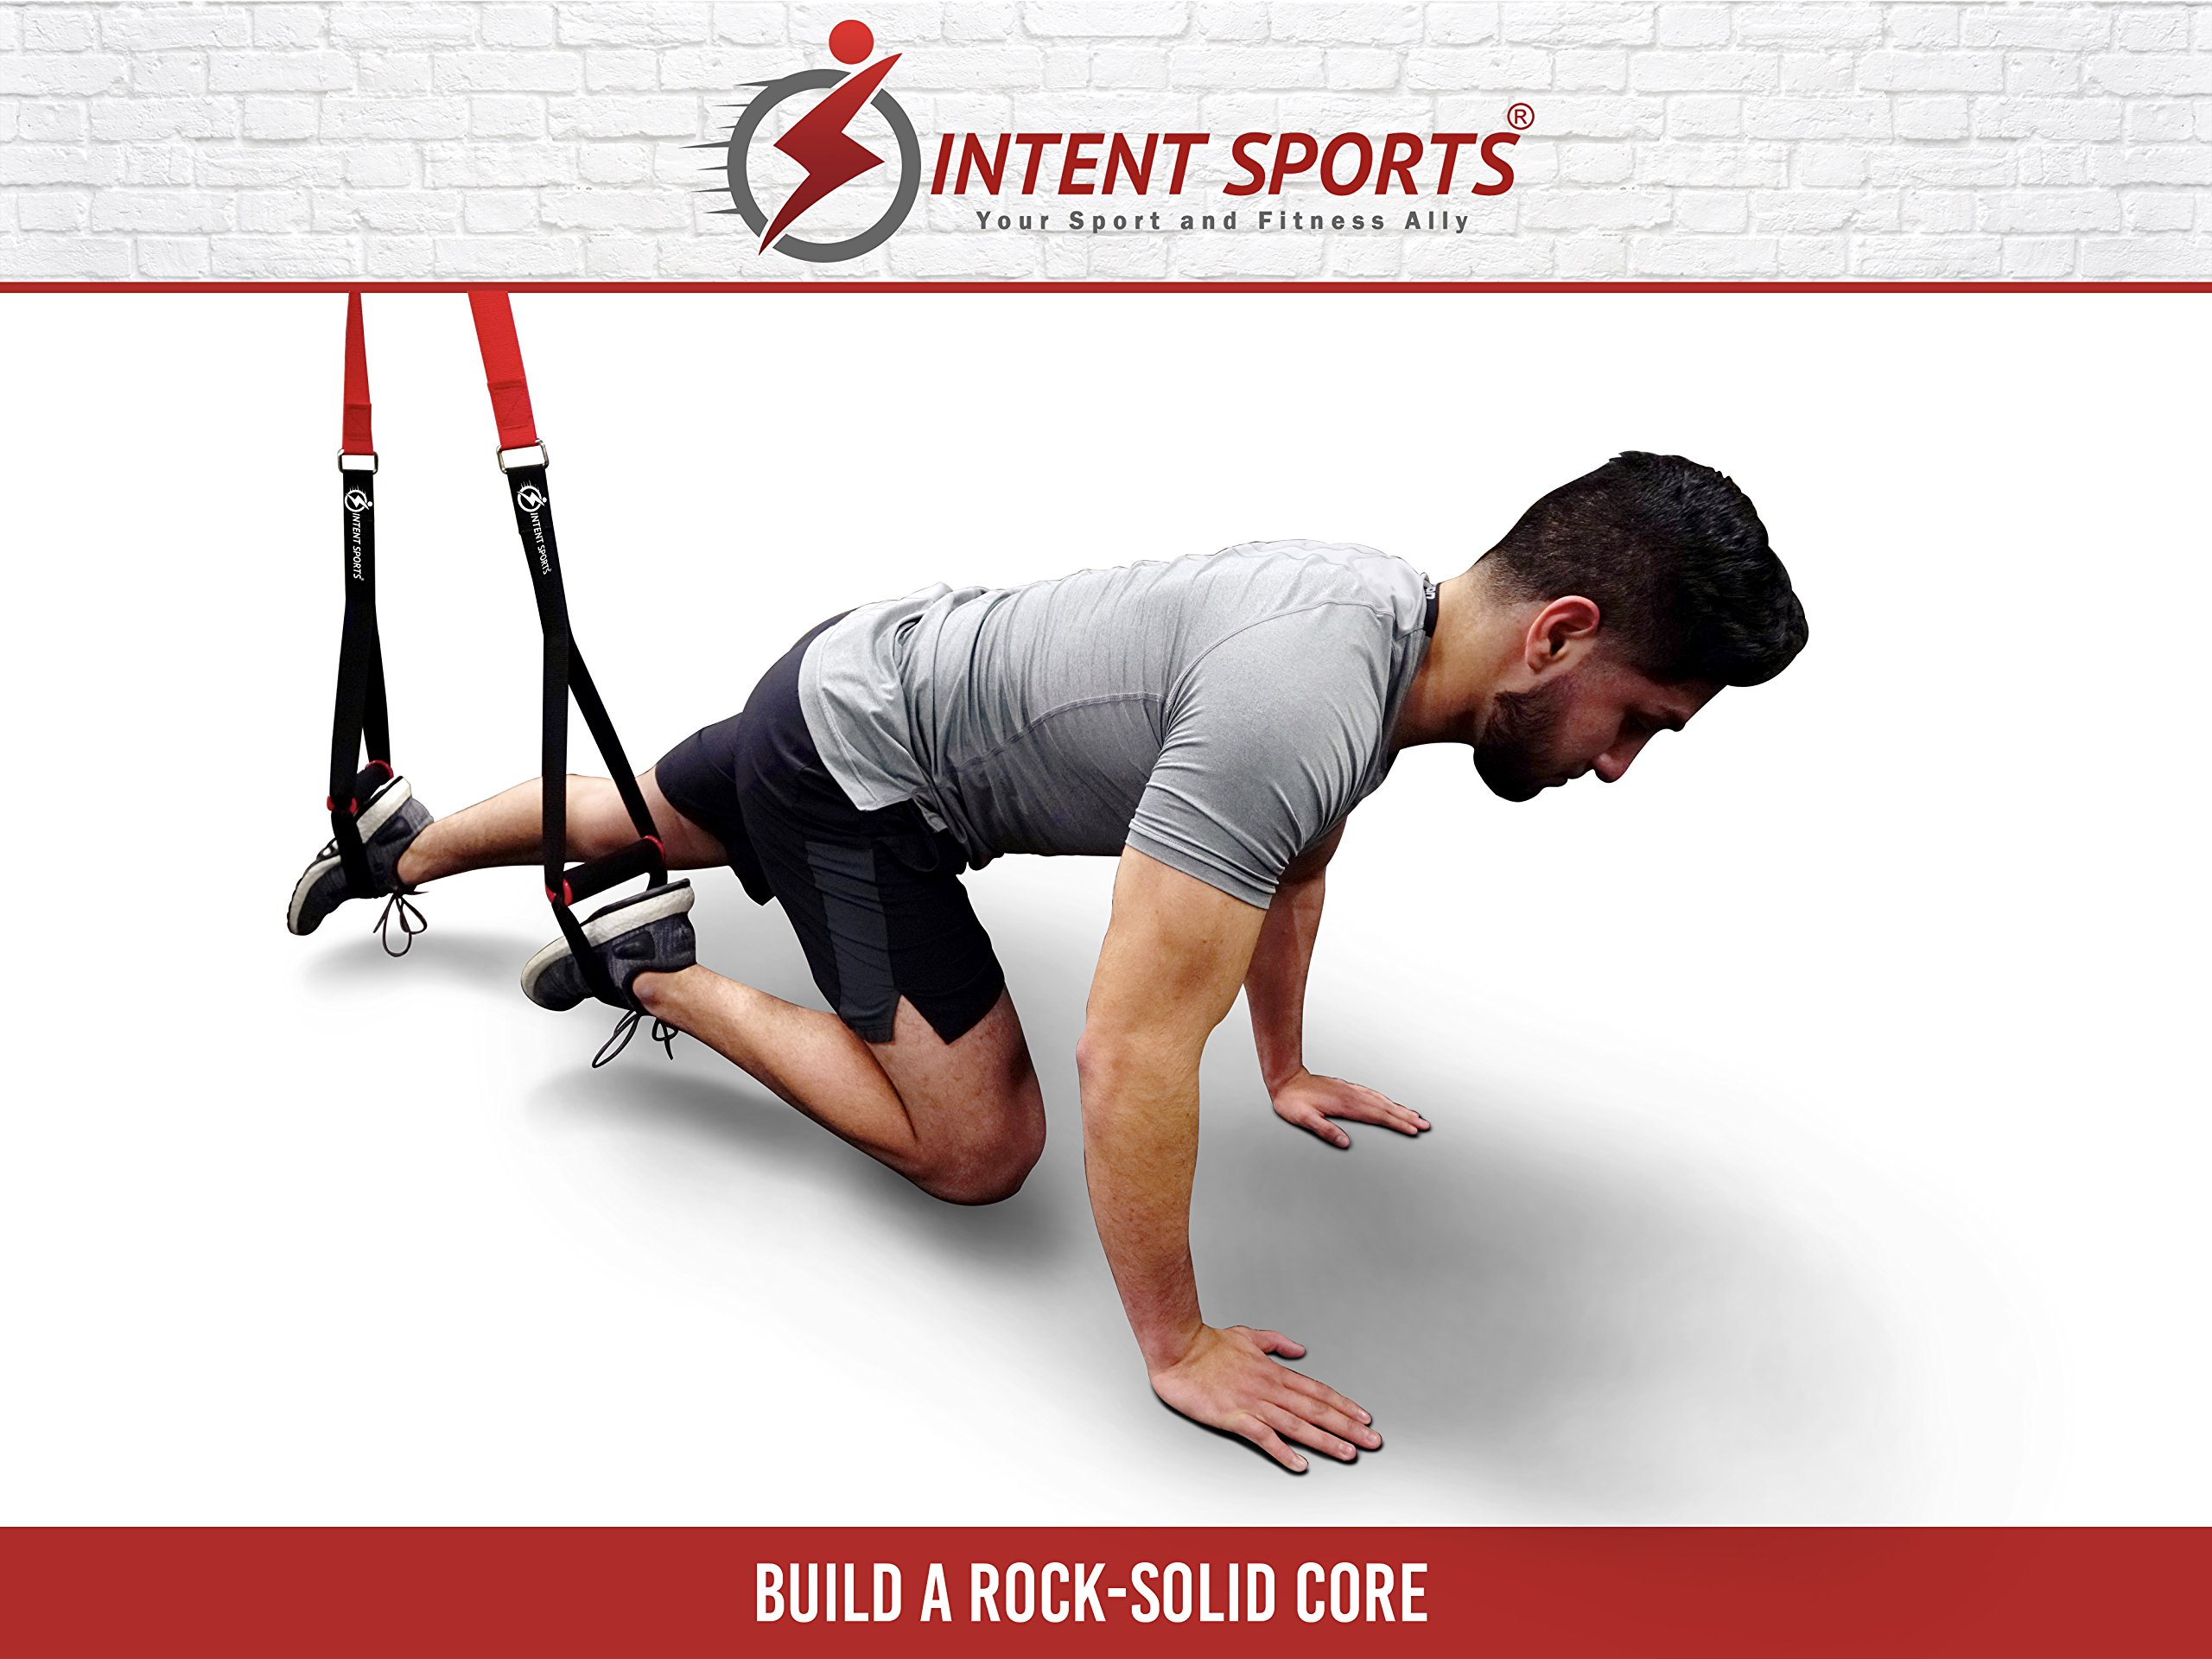 Bodyweight Fitness Resistance Trainer Kit with Pro Straps for Door, Pull up Bar or Anchor Point. Lean, Light, Extra Durable for Complete Body Workouts. E-Book ''12 Week Program'' (Patent Pending) by INTENT SPORTS (Image #5)